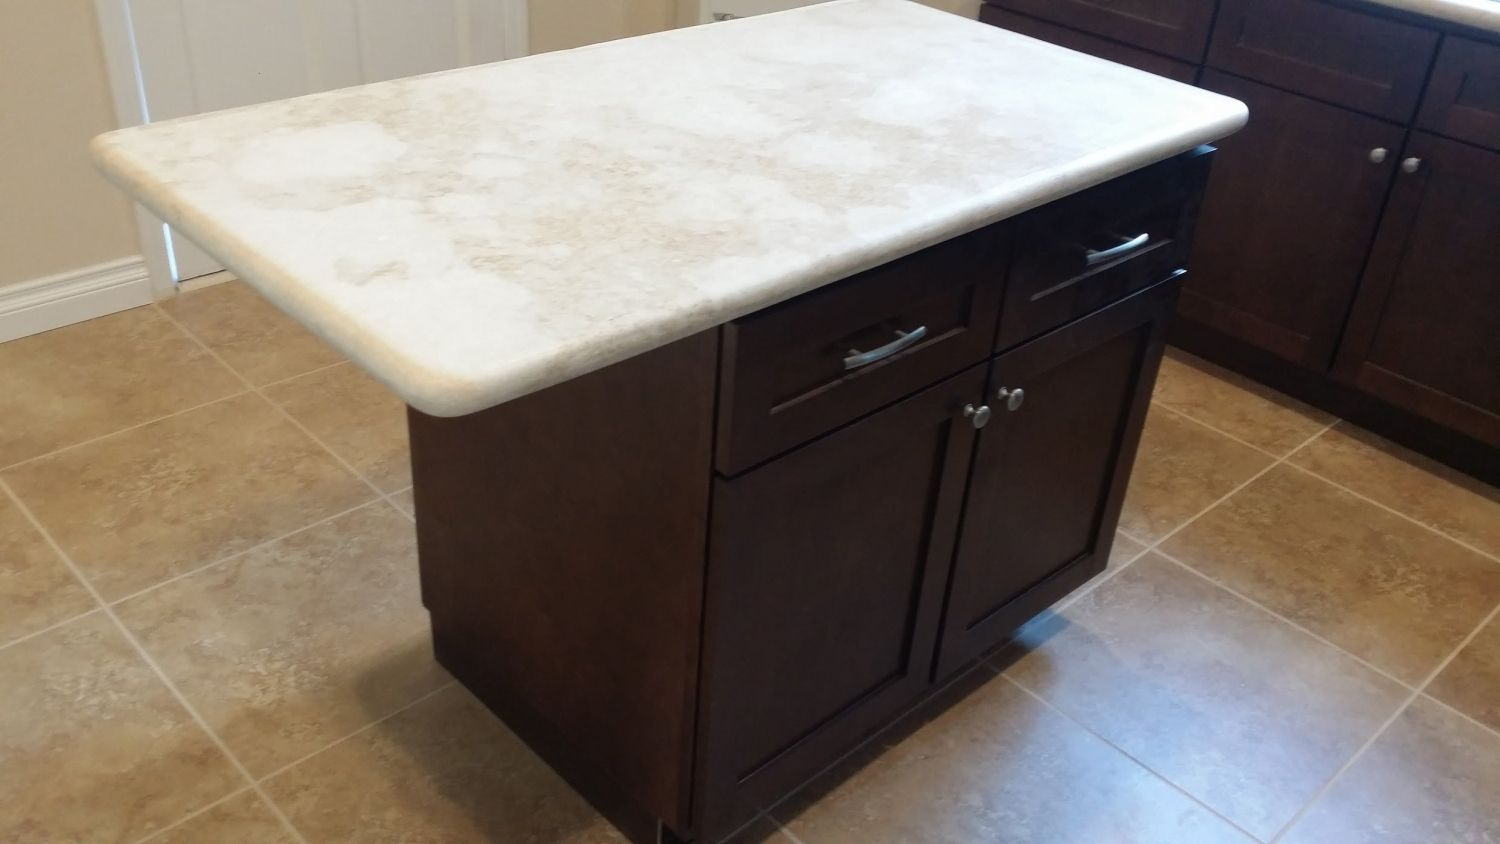 How to install a kitchen island diy kitchen countertop ideas check how to install a kitchen island diy kitchen countertop ideas check more at http solutioingenieria Images